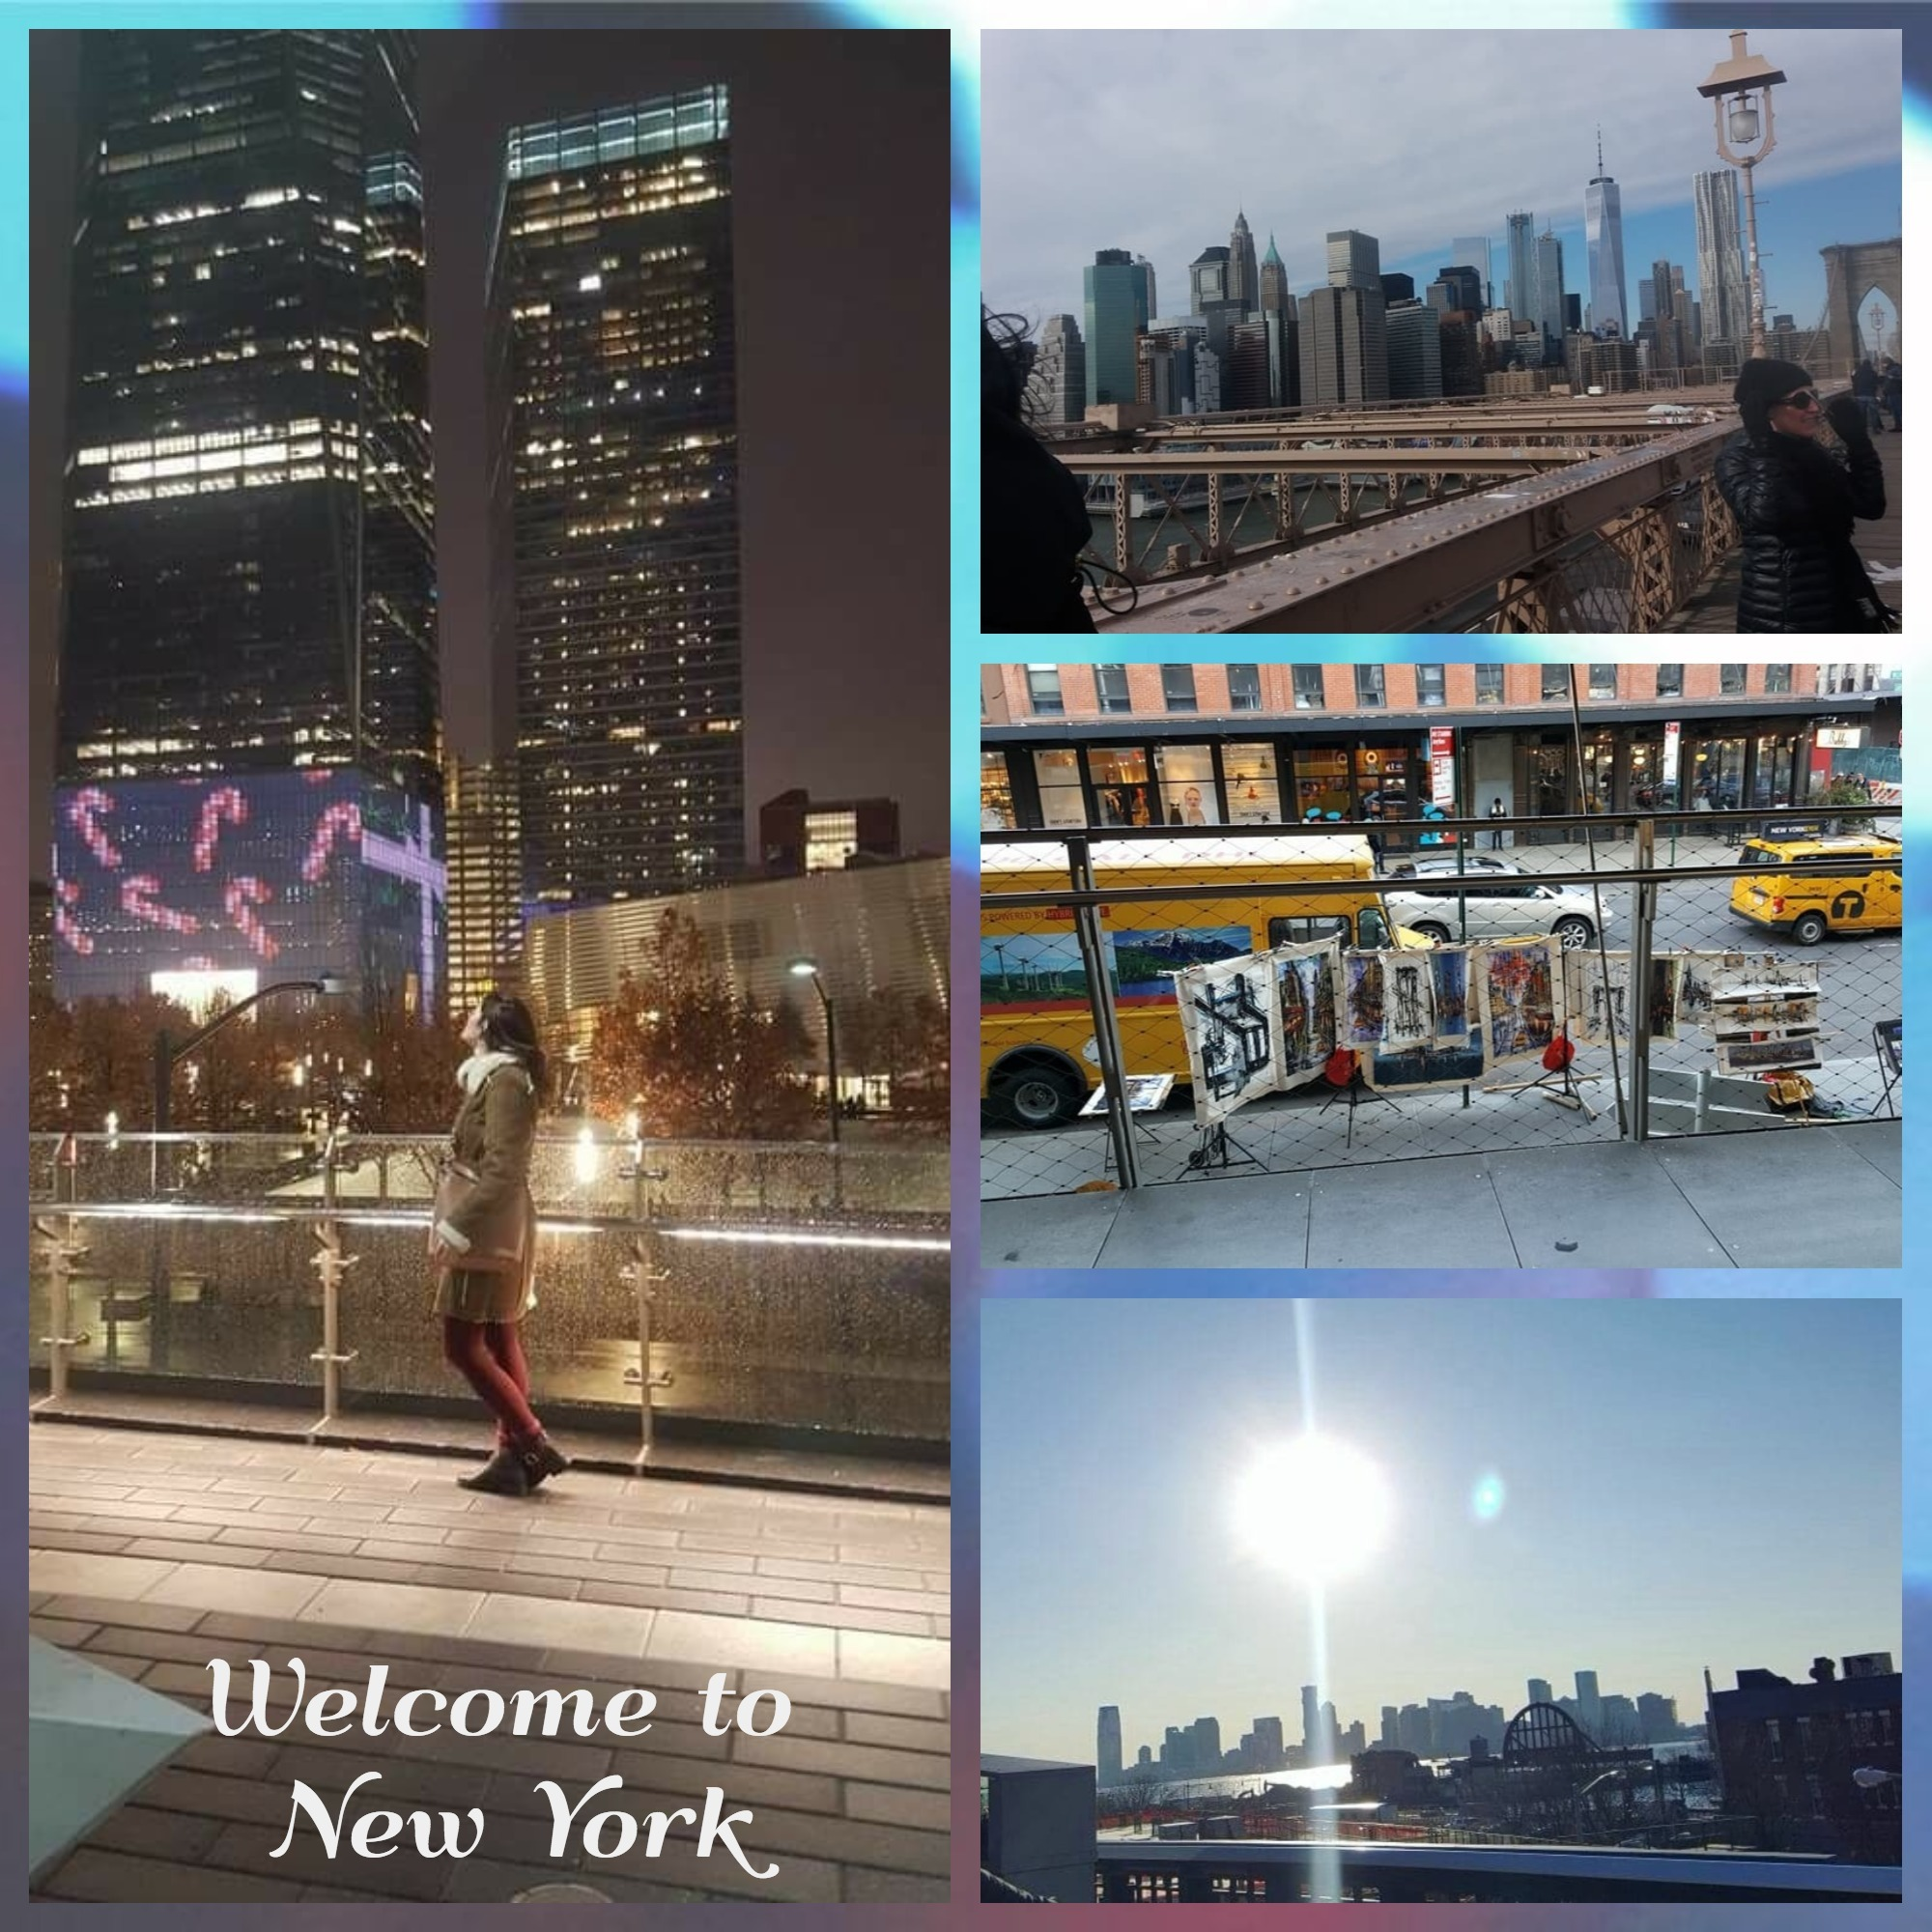 The NYC attractions